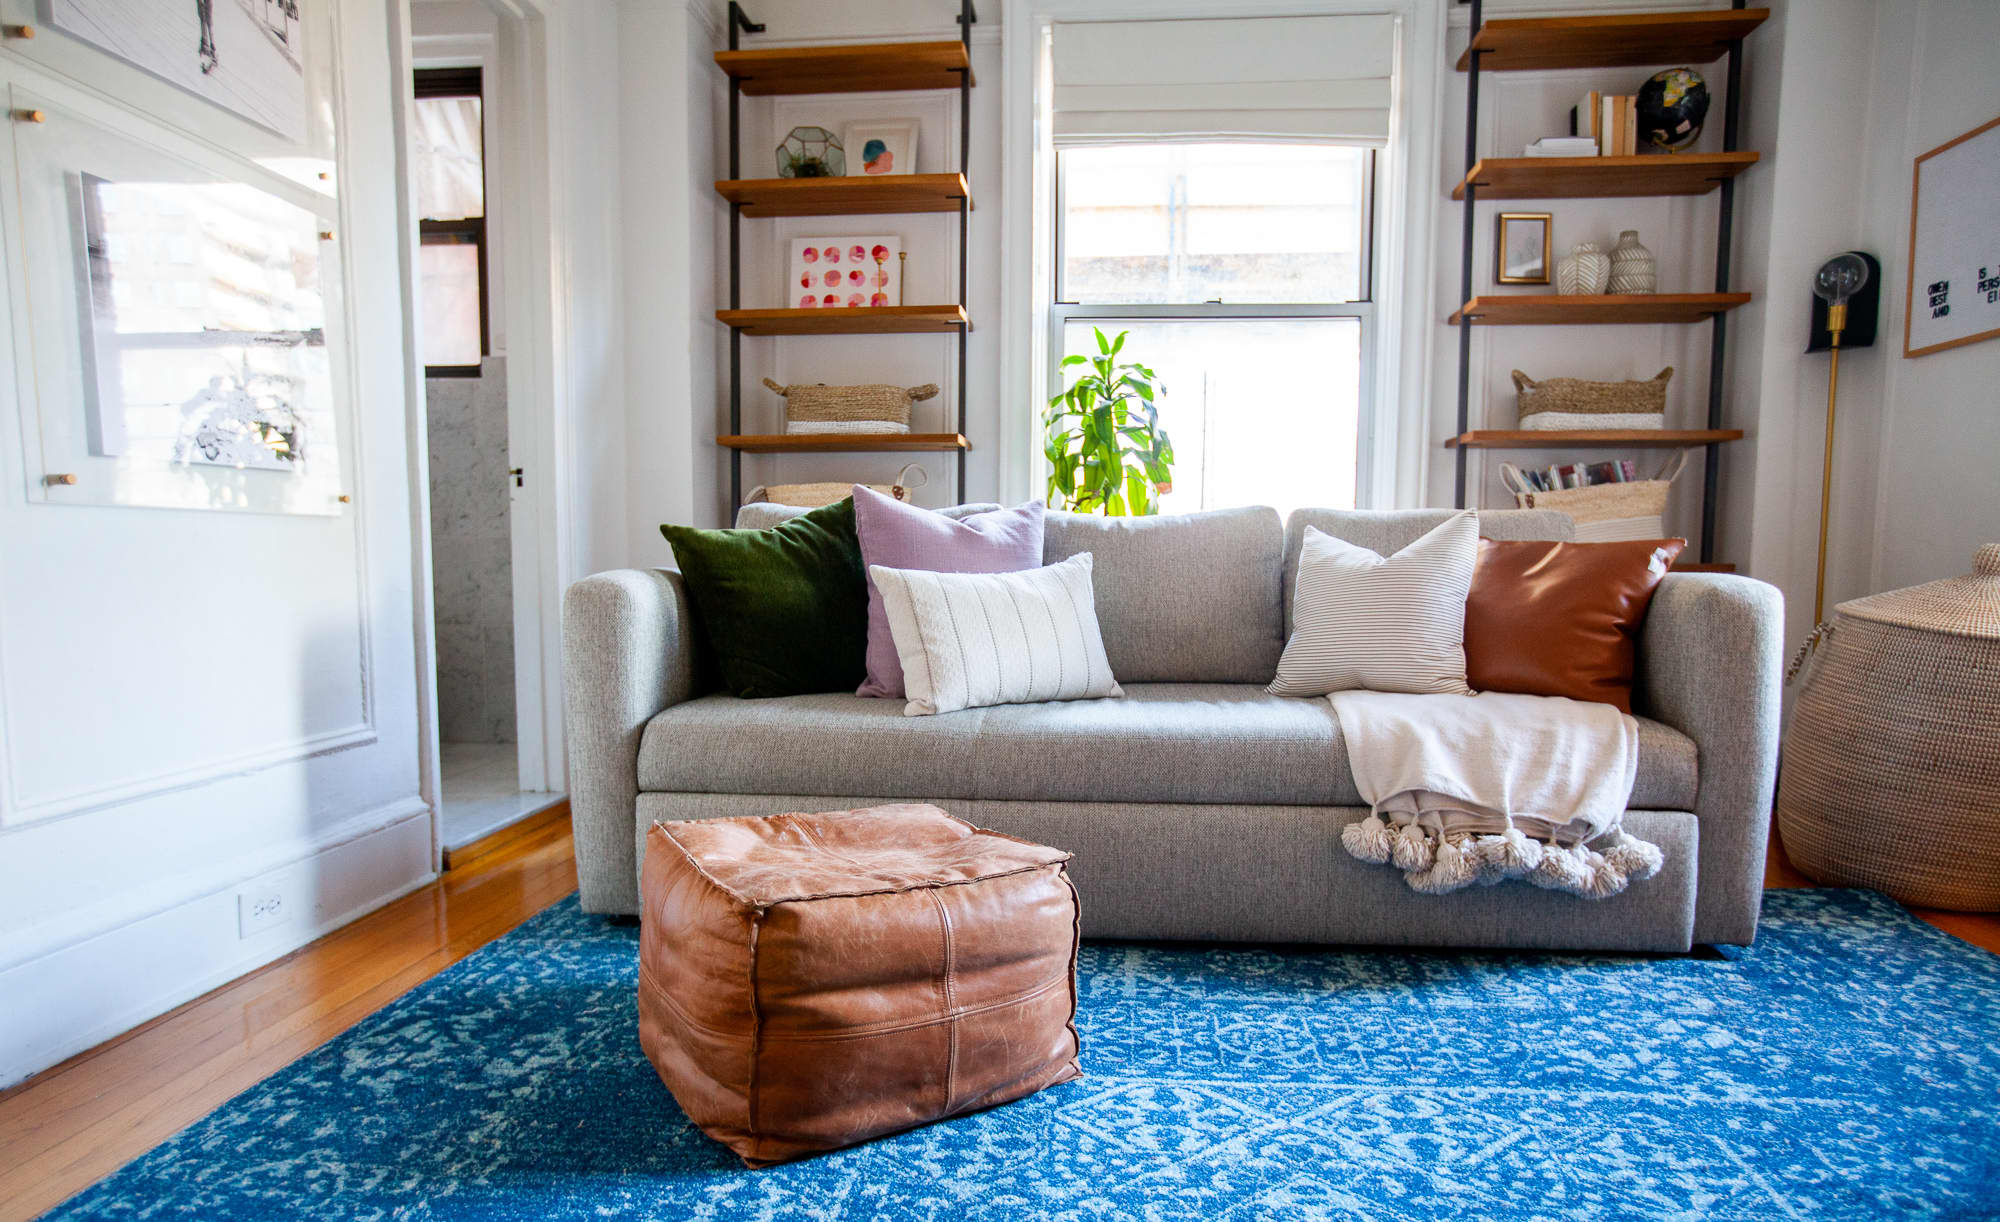 Small Space Storage And Decor Ideas In A NYC Home